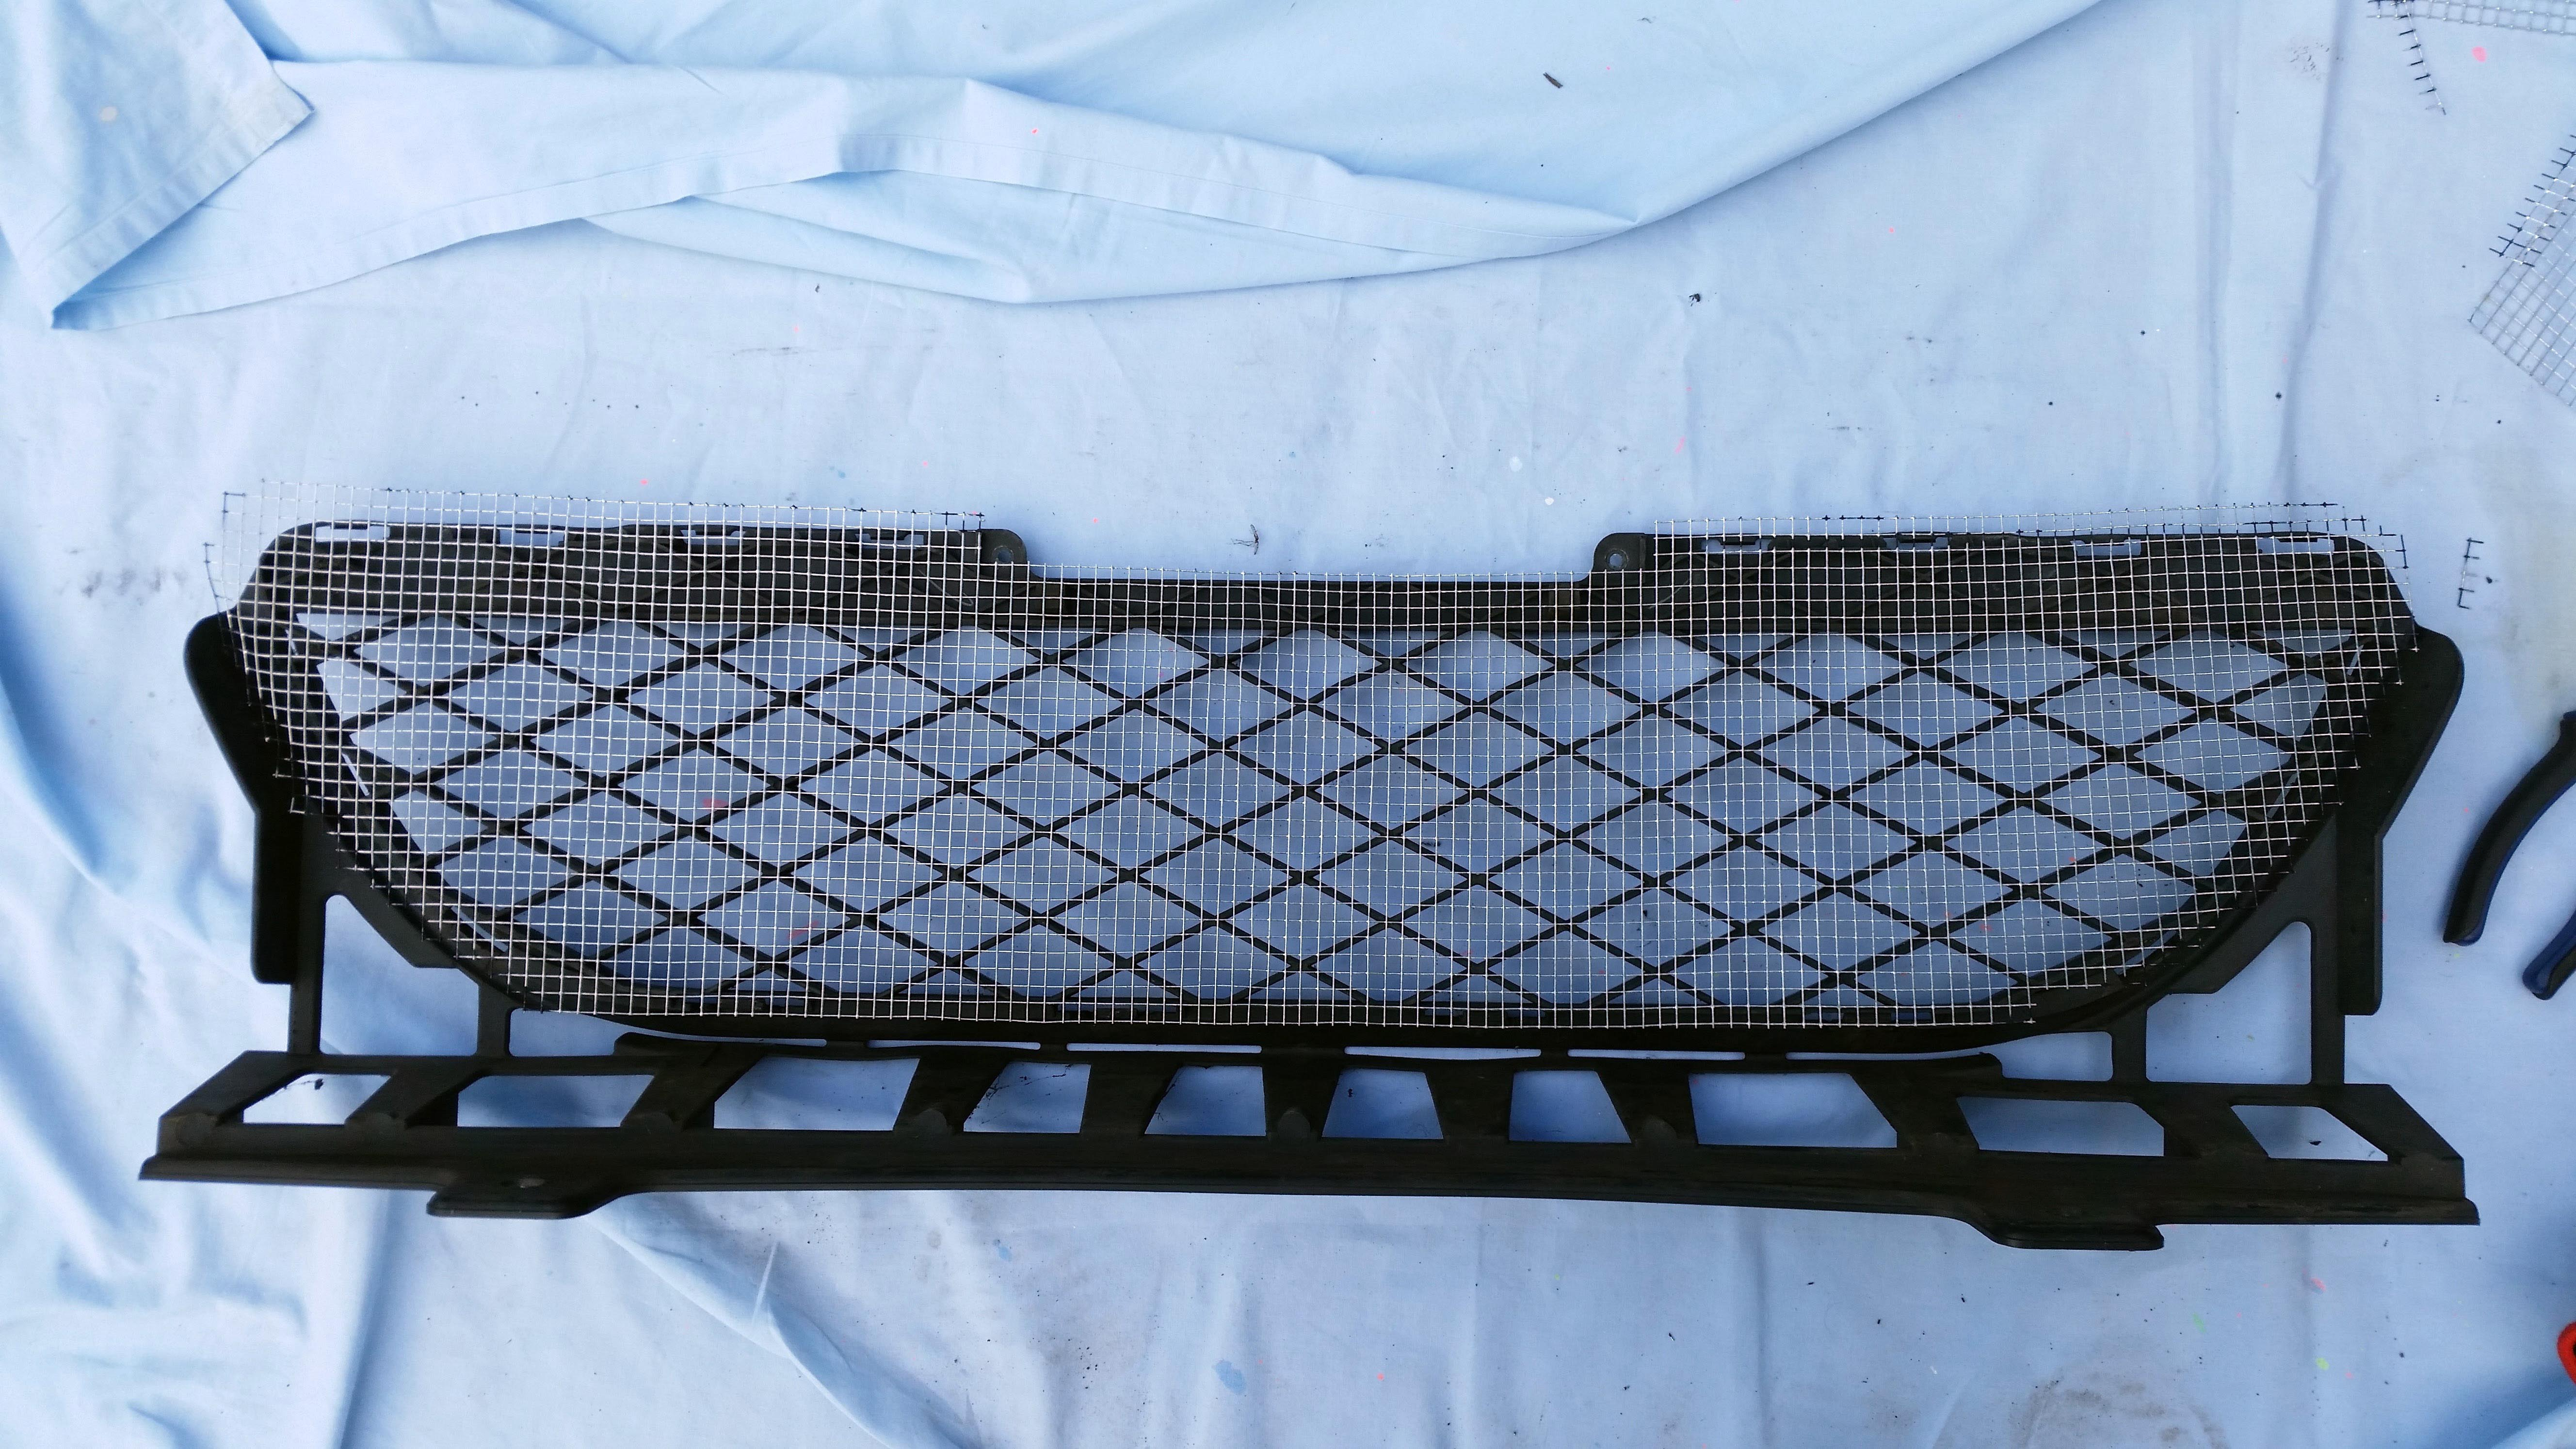 Honda Jazz GD - Grill Mod to Protect Aircon Condenser